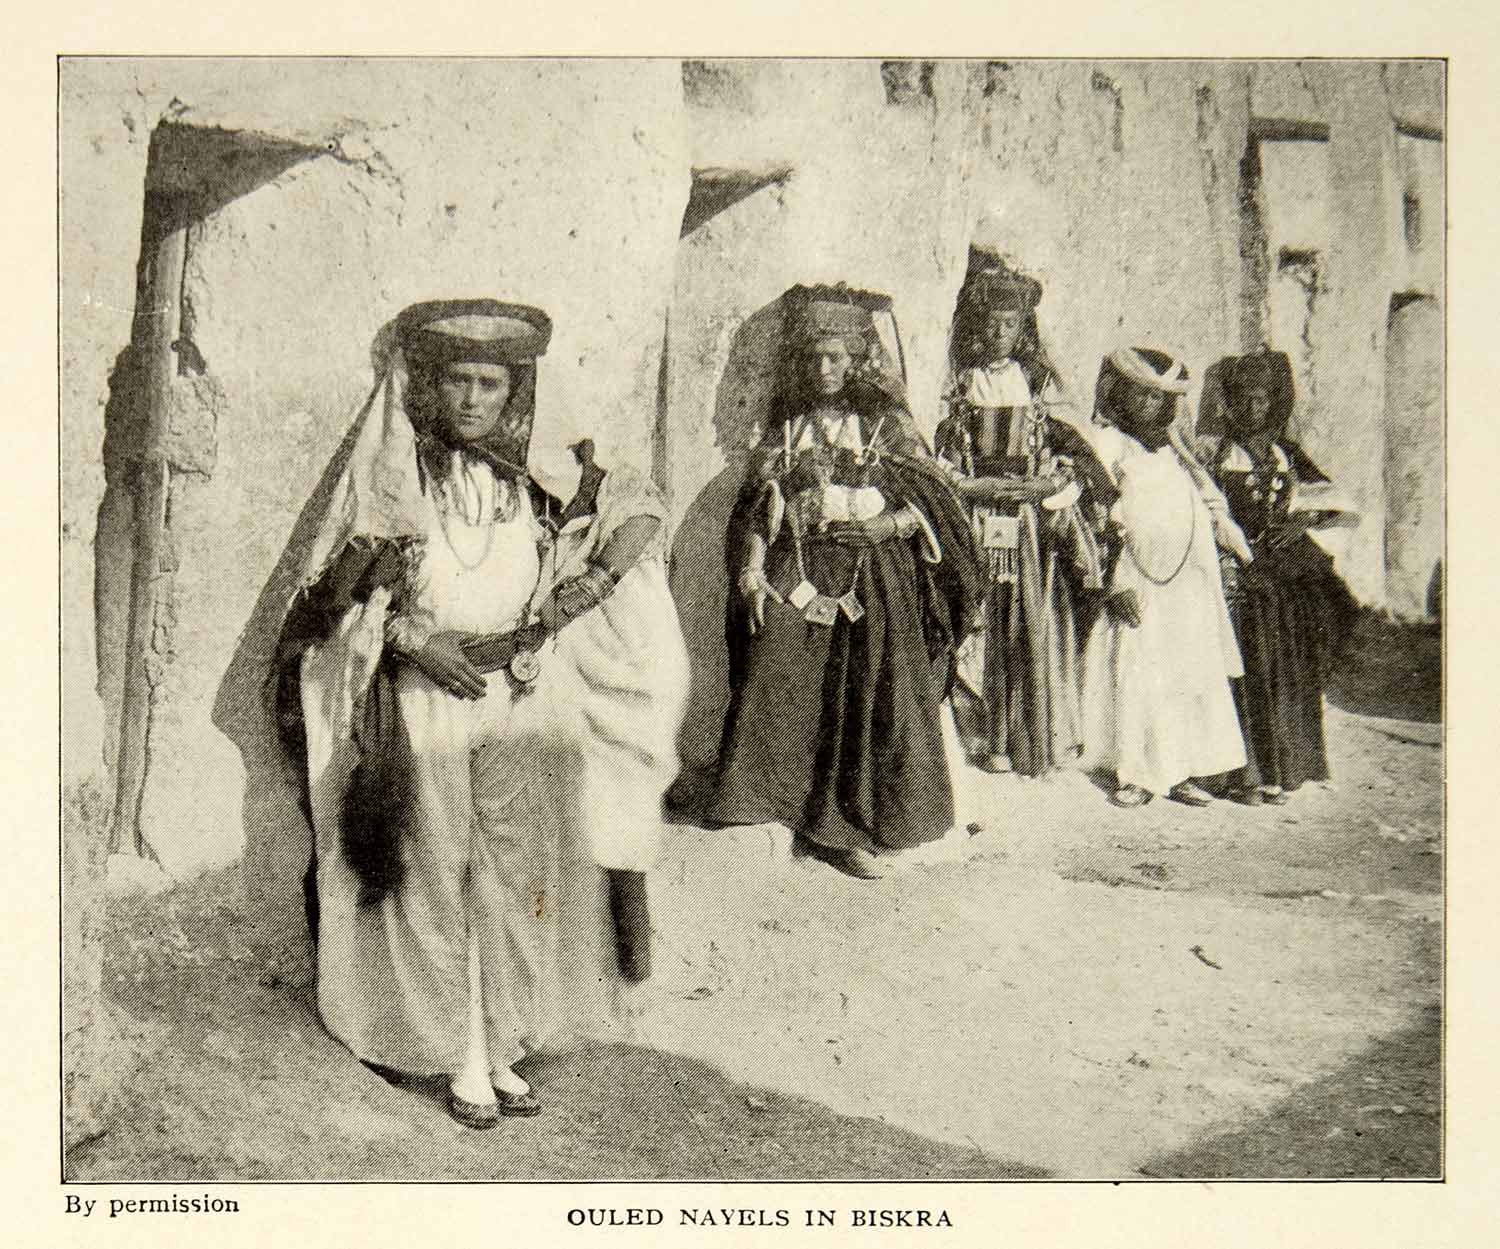 1903 Print Ouled Navels Biskra Algeria Costume Traditional Dress Image XGFD2